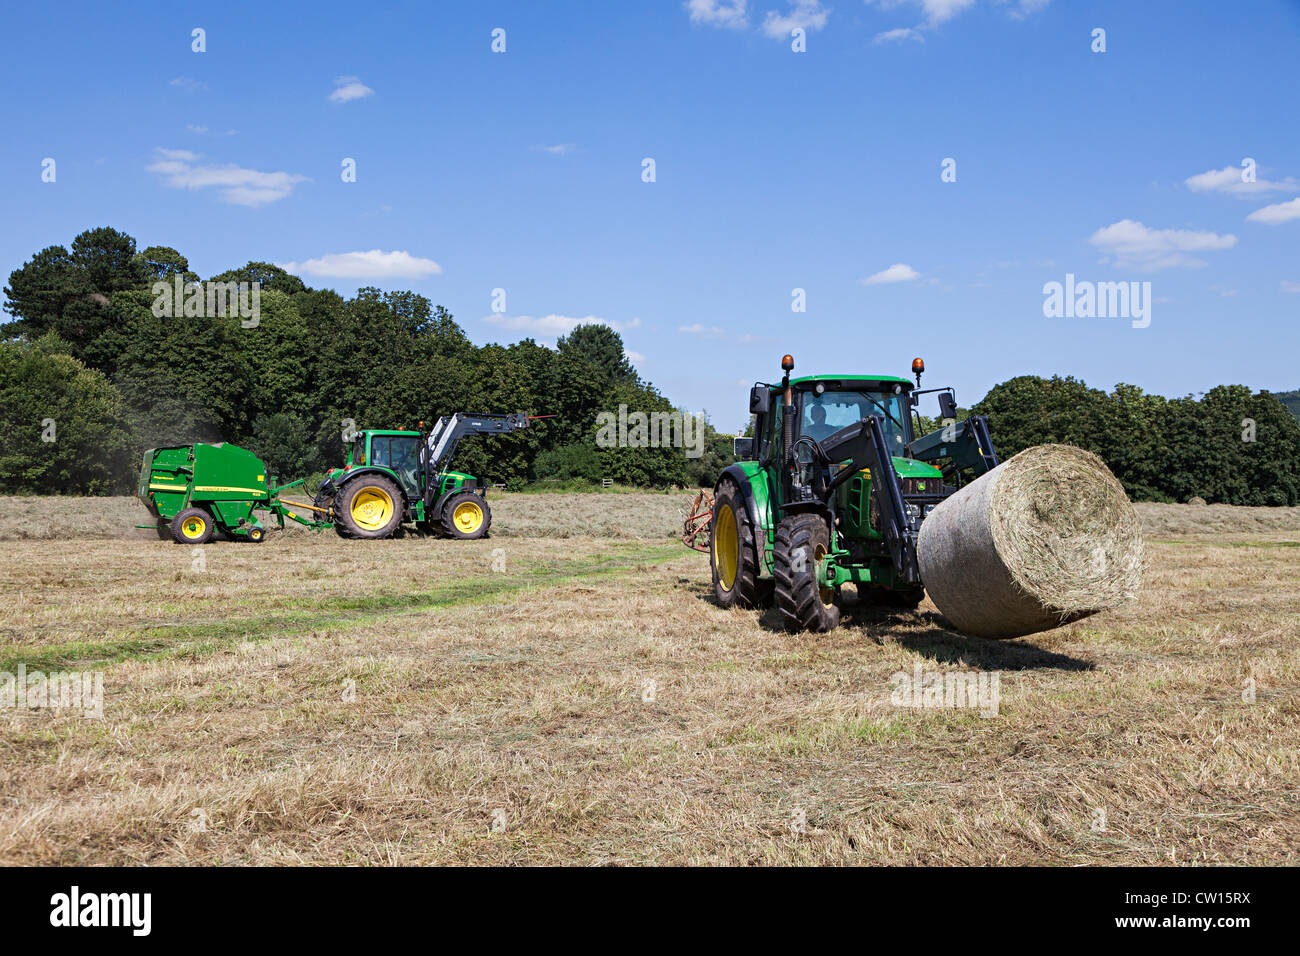 Tractor transporting baled hay with baling tractor behind, Castle Meadows, Abergavenny, Wales, UK - Stock Image